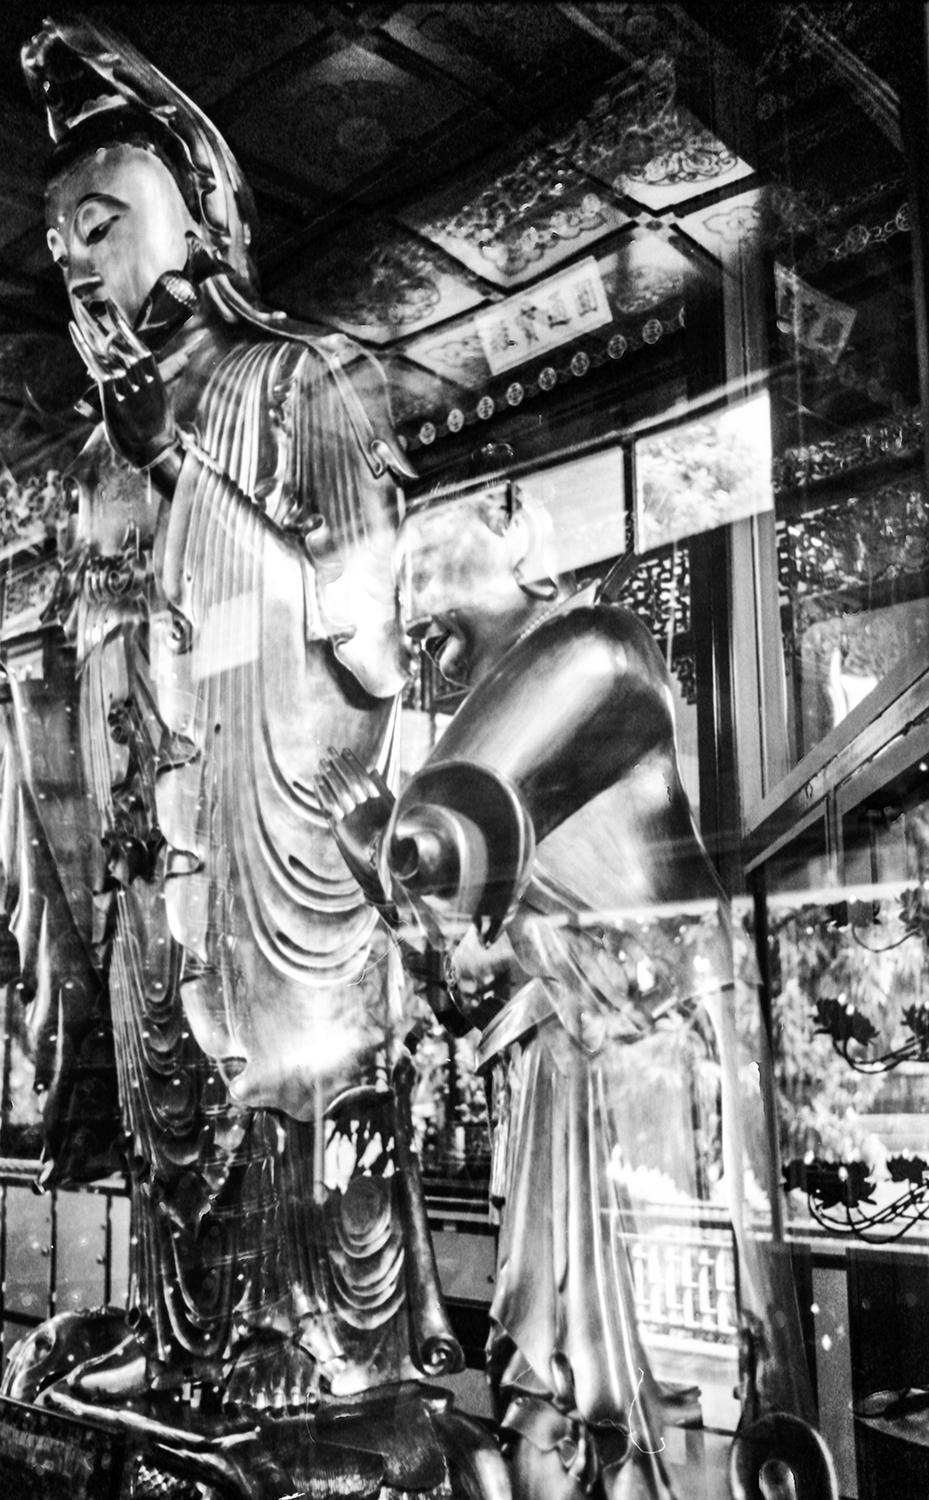 statues in a Buddhist temple, Honolulu HI. 2014   ©Go Nakamura     photography